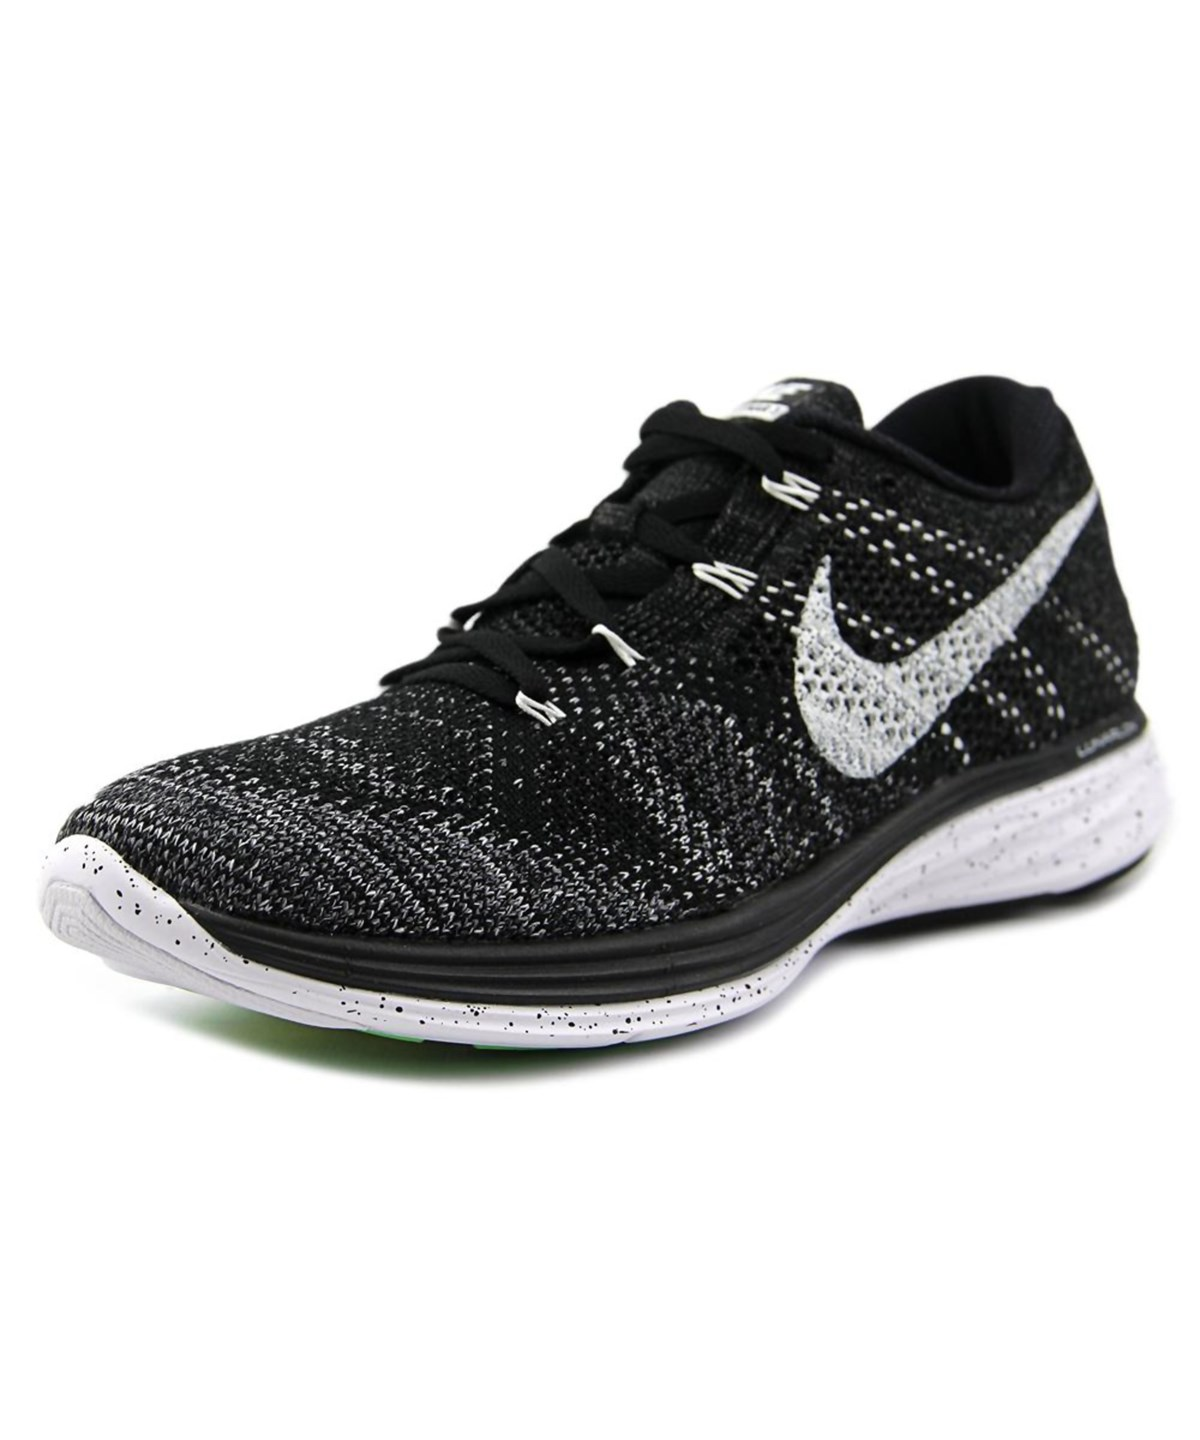 Nike Canvases NIKE FLYKNIT LUNAR 3 MEN  ROUND TOE CANVAS BLACK RUNNING SHOE'